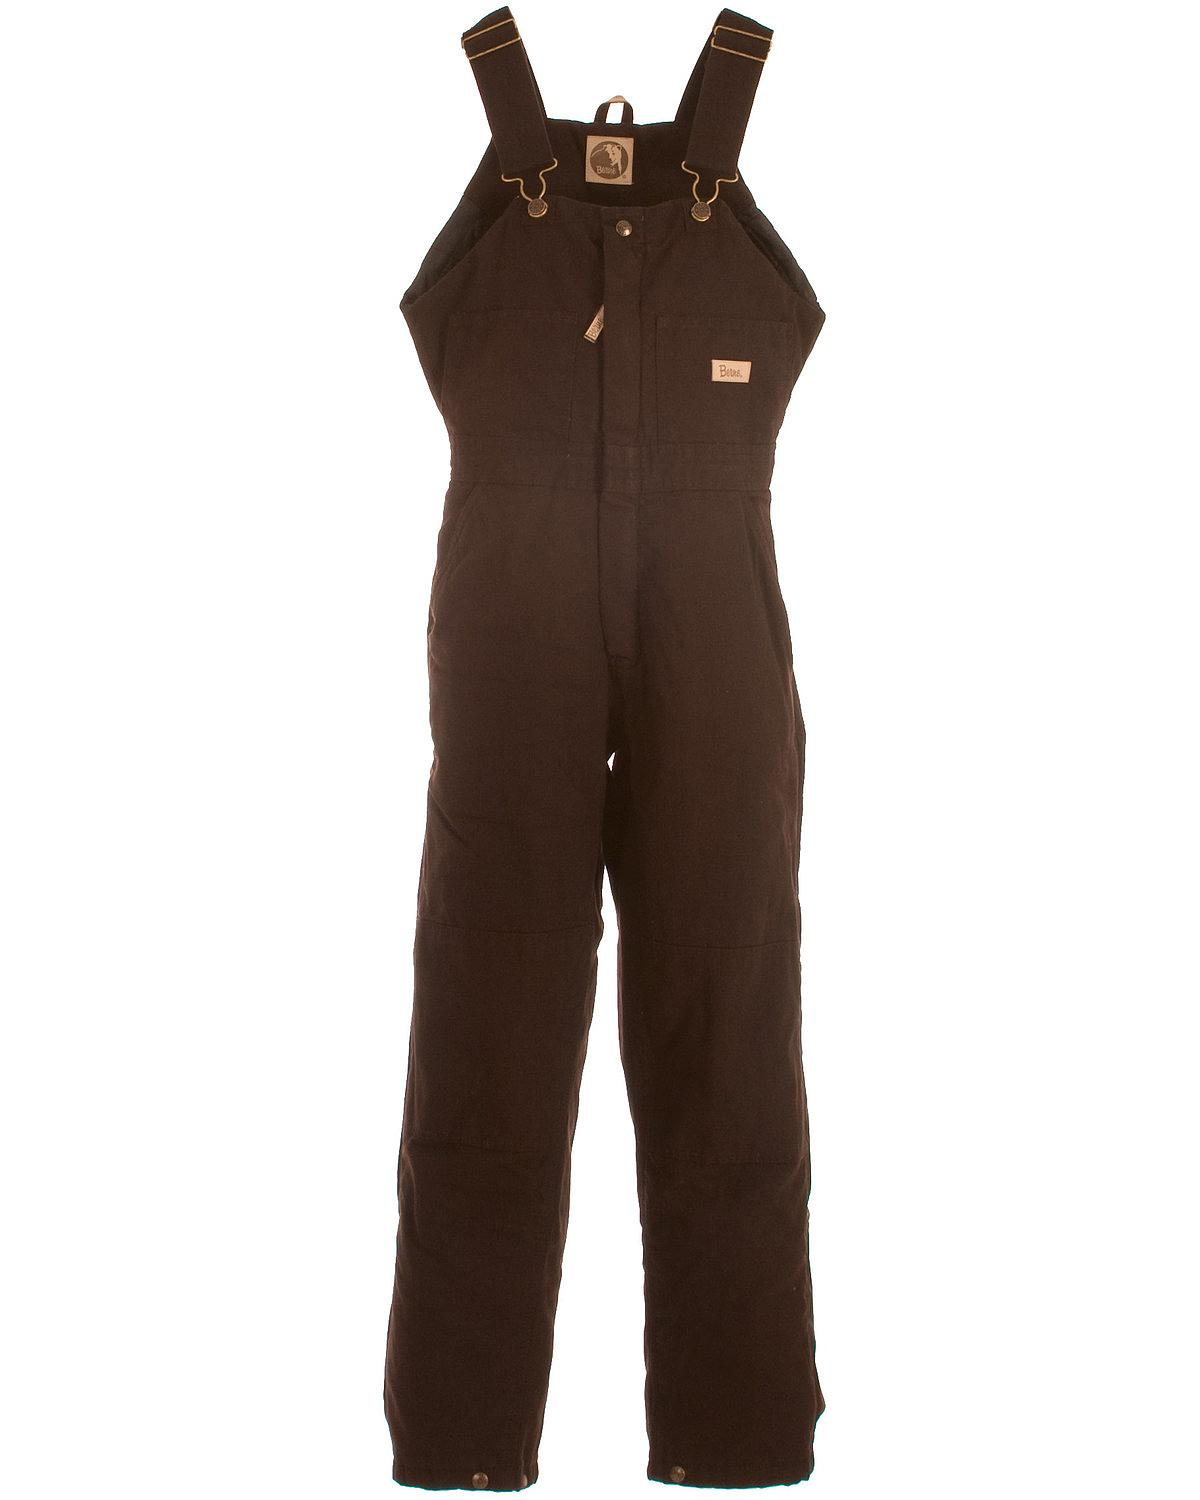 Berne Women's Washed Insulated Bib Overalls Short ...